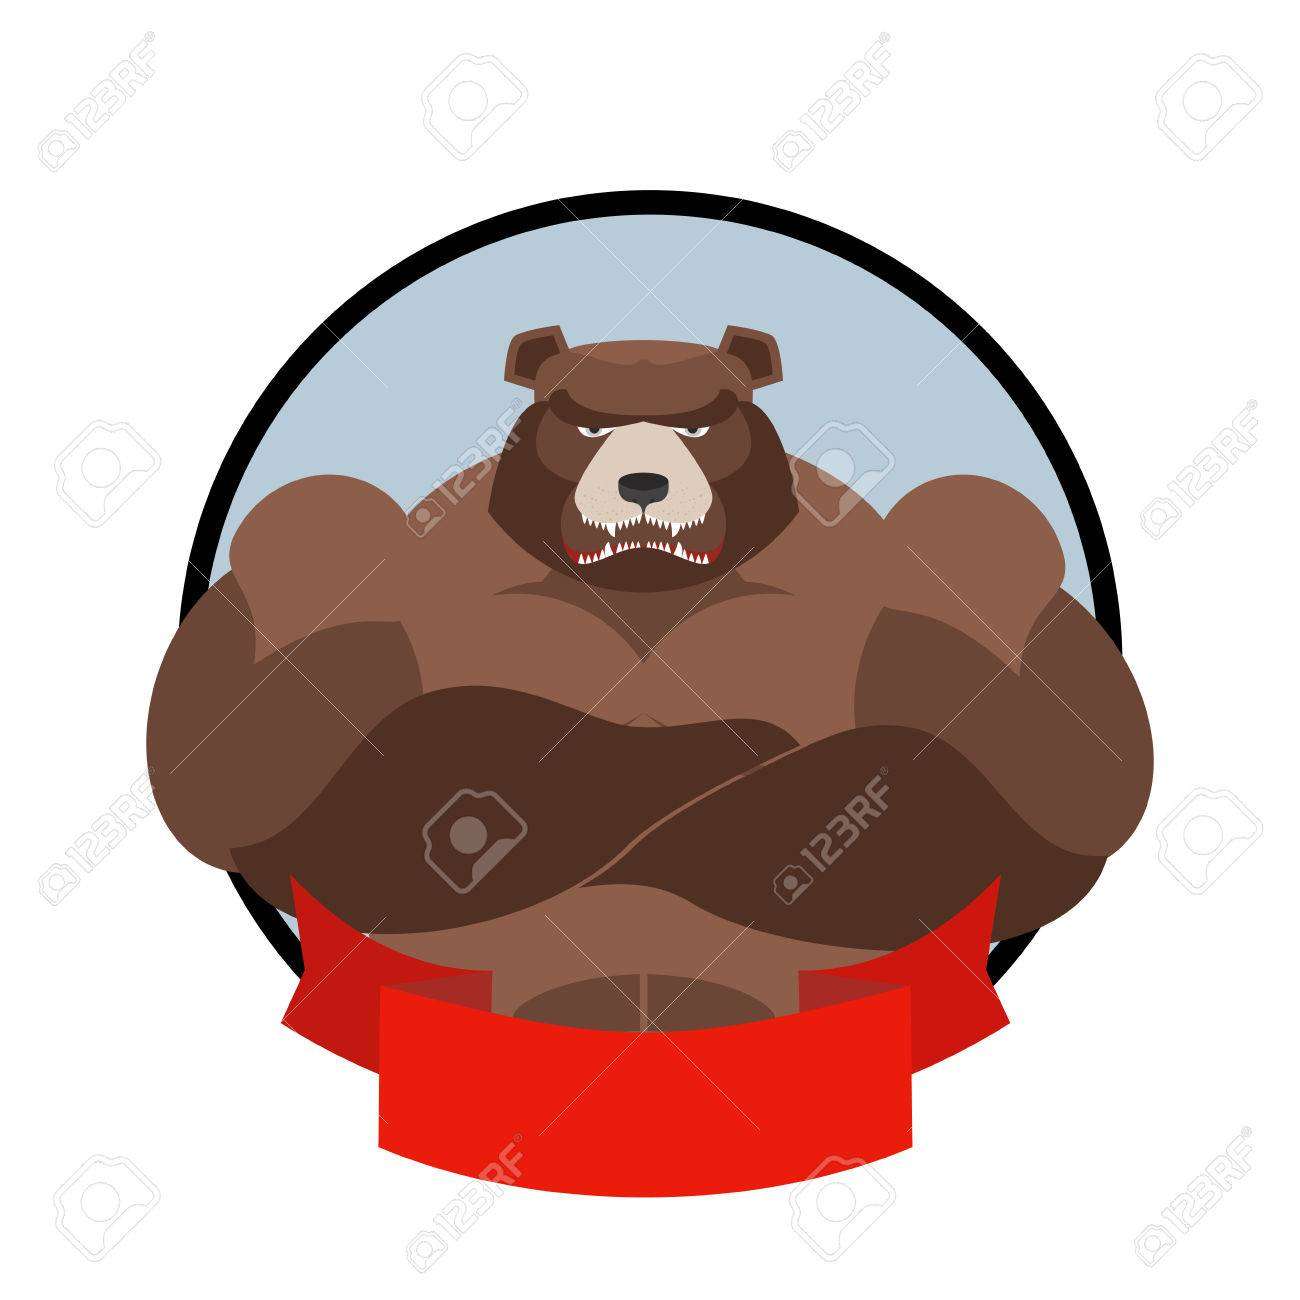 strong bear logo for sports club team grizzly bear with big rh 123rf com  grizzly bear logo images